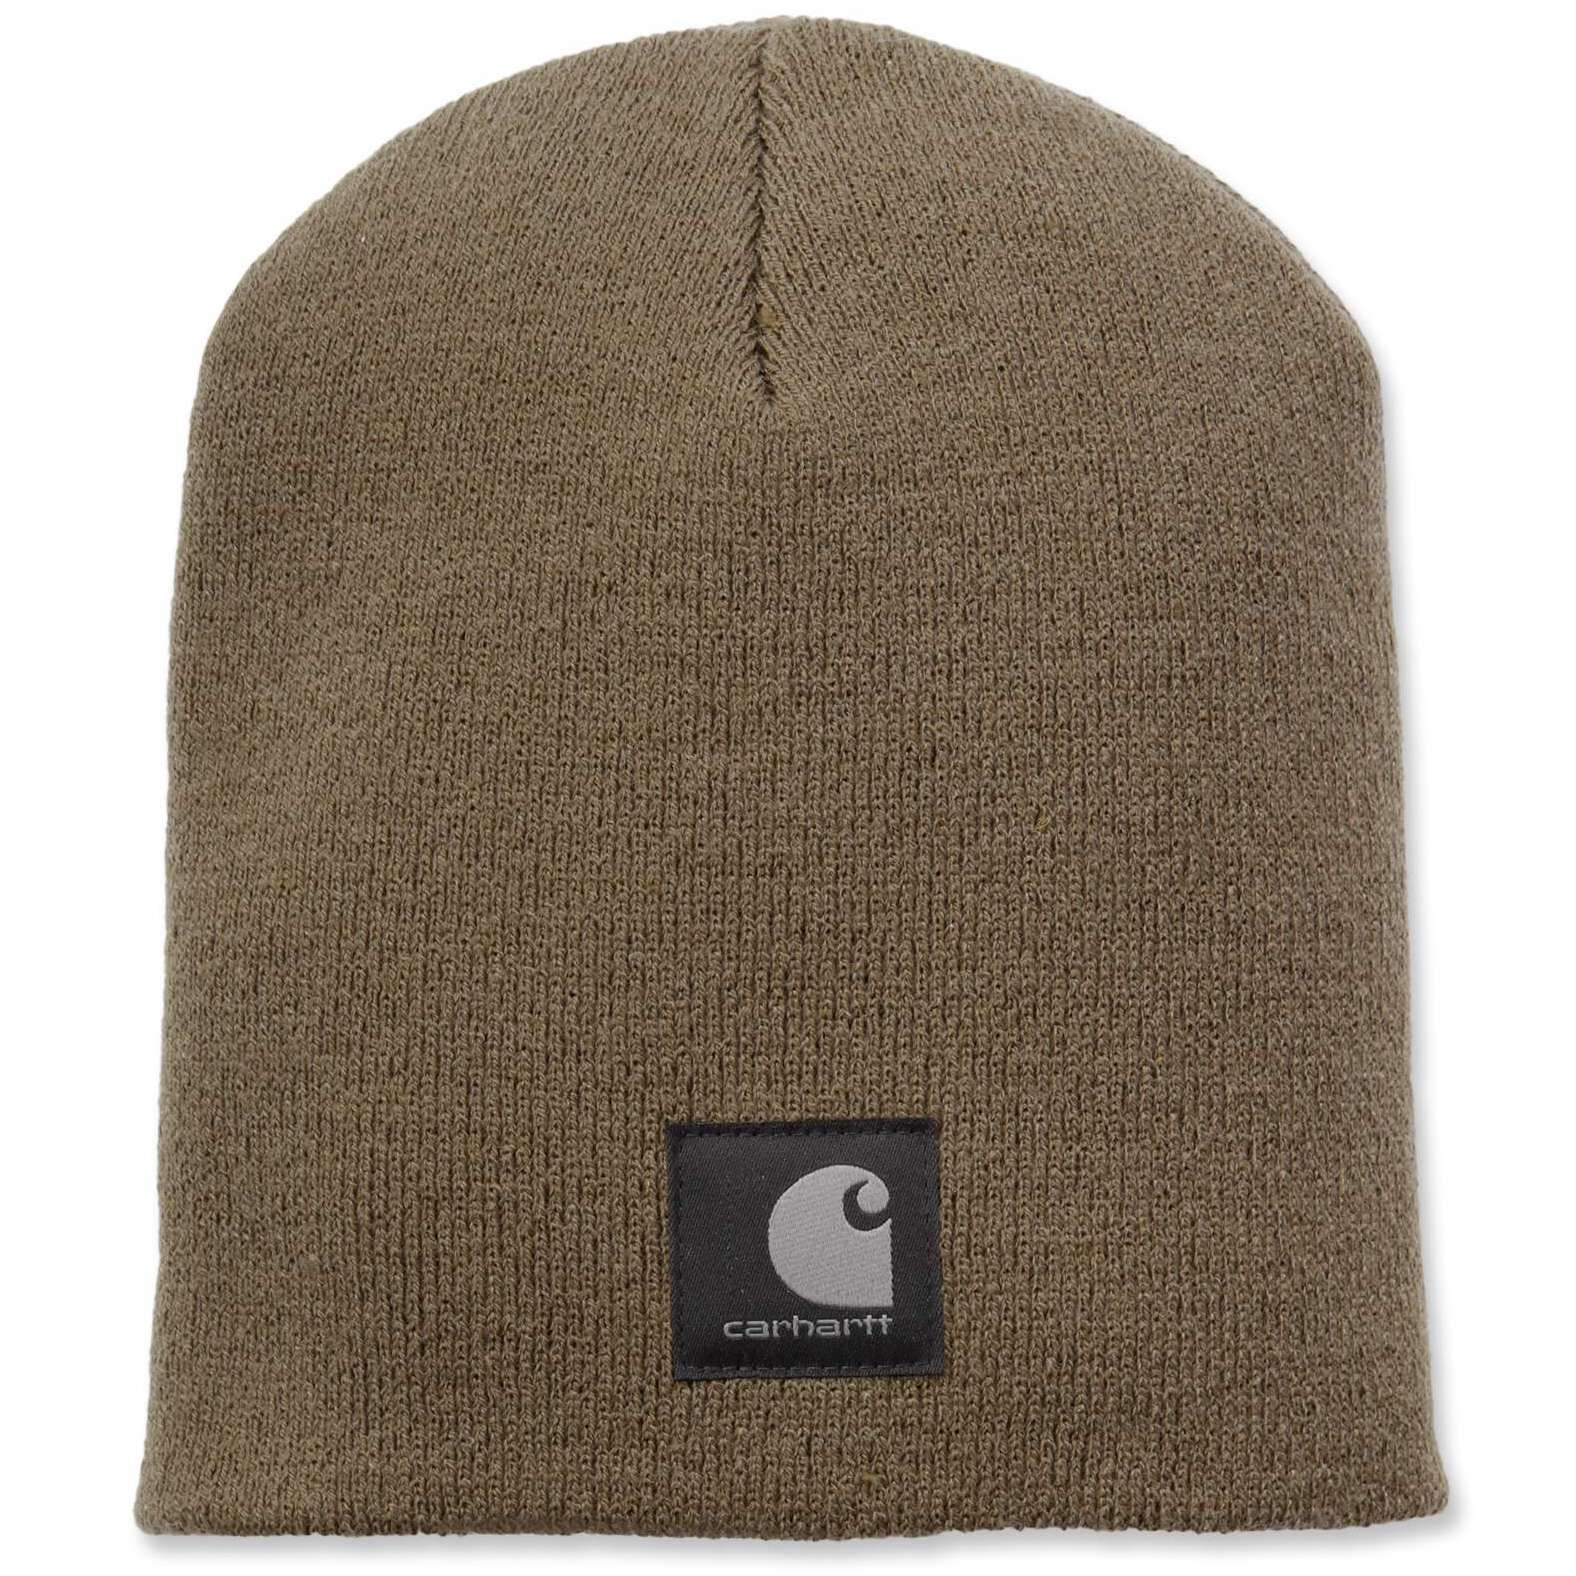 Шапка Carhartt Force Extremes Knit Hat - 103271 (Burnt Olive, OFA)